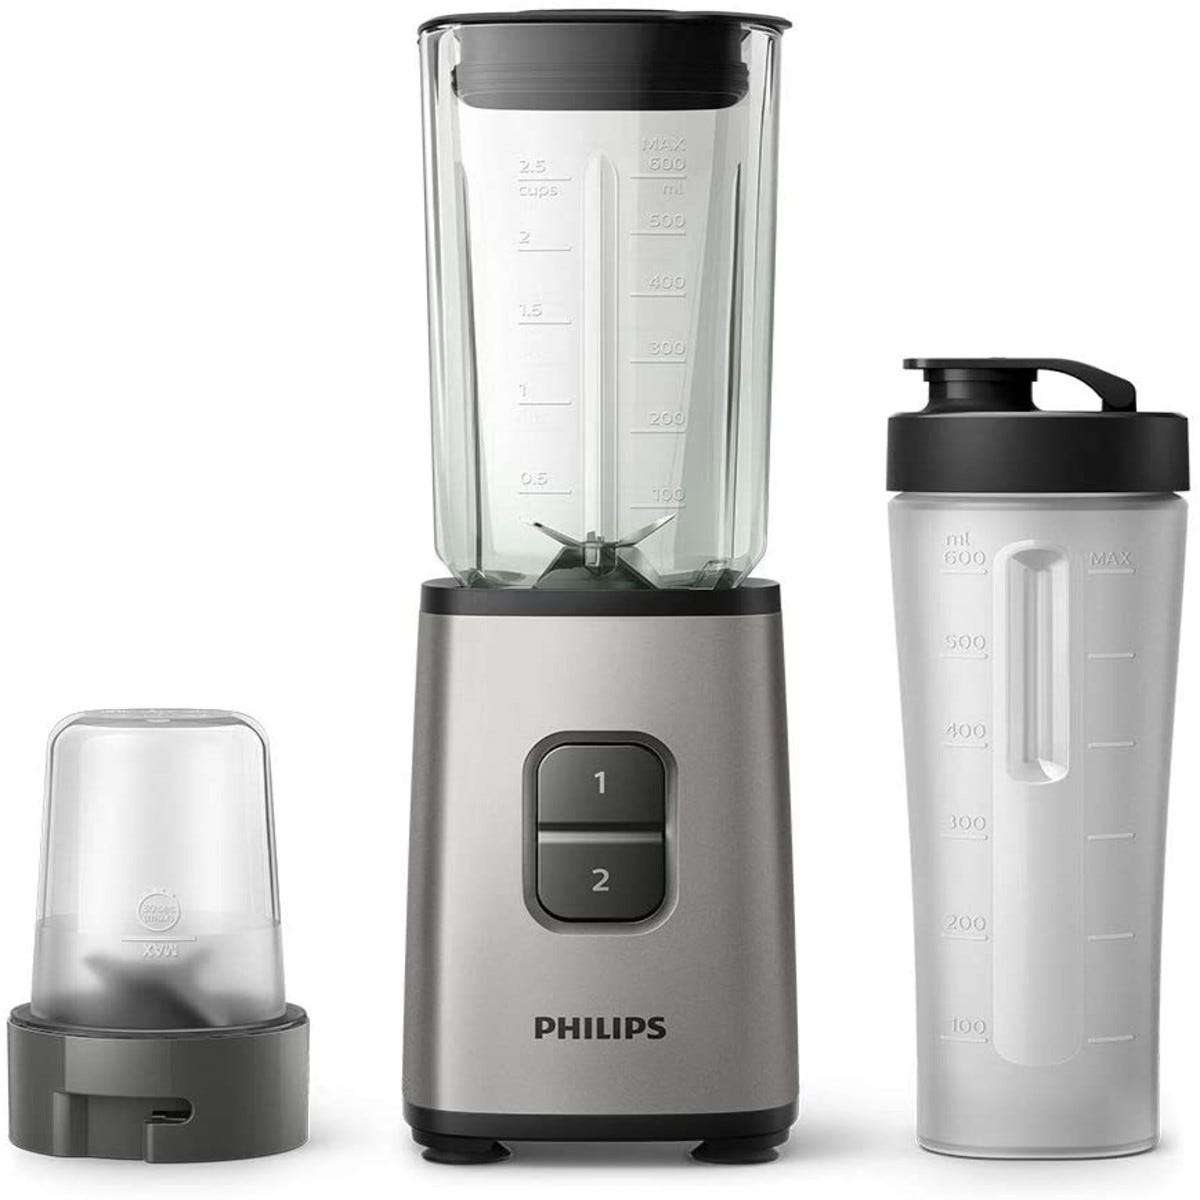 Philips HR2605/81 Daily Collection 3-in-1 Mini Blender - Black